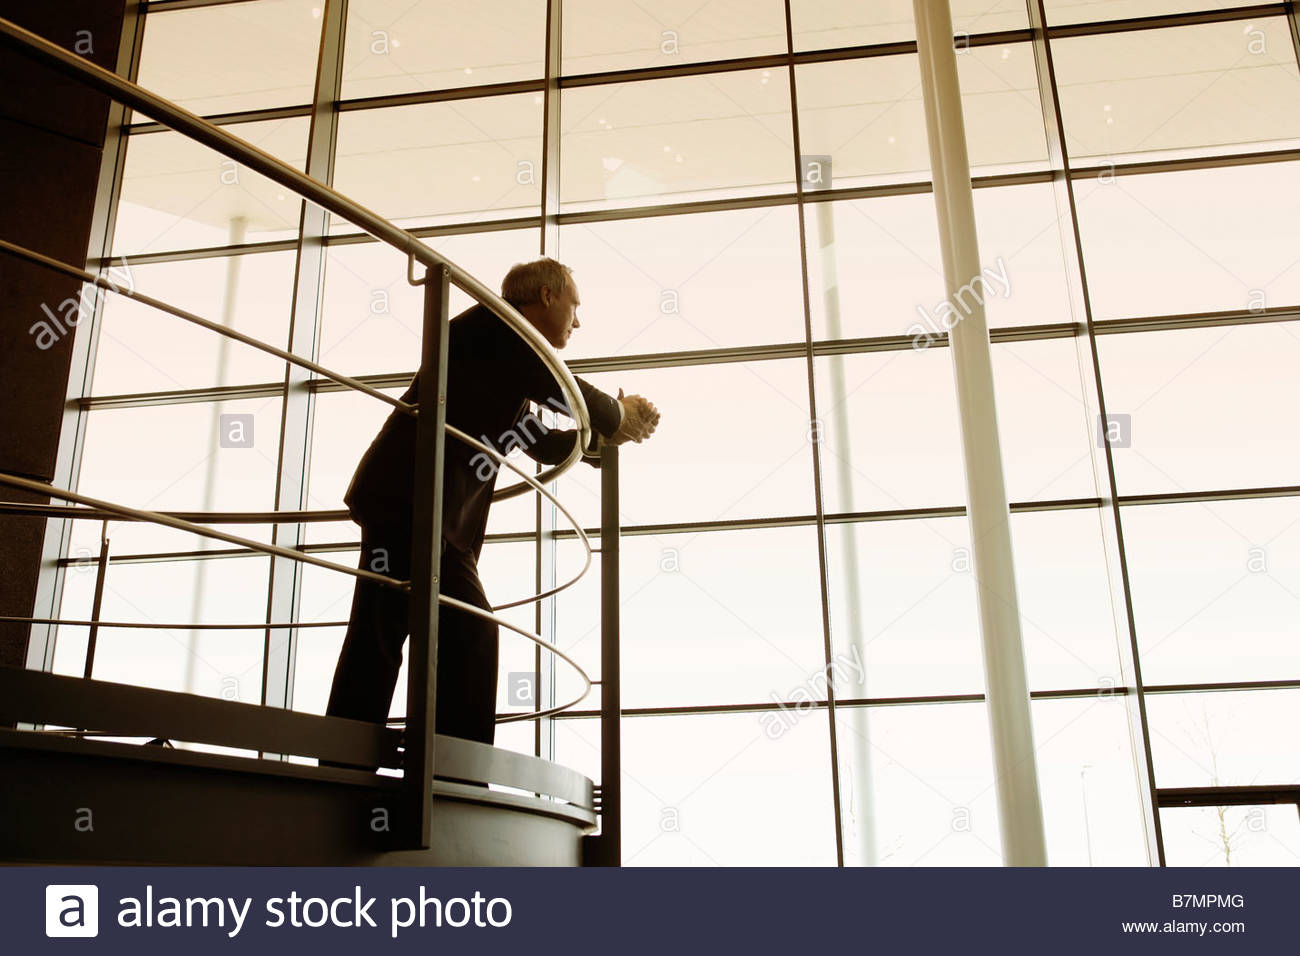 A businessman looking over balcony railings in a modern office building Stock Photo